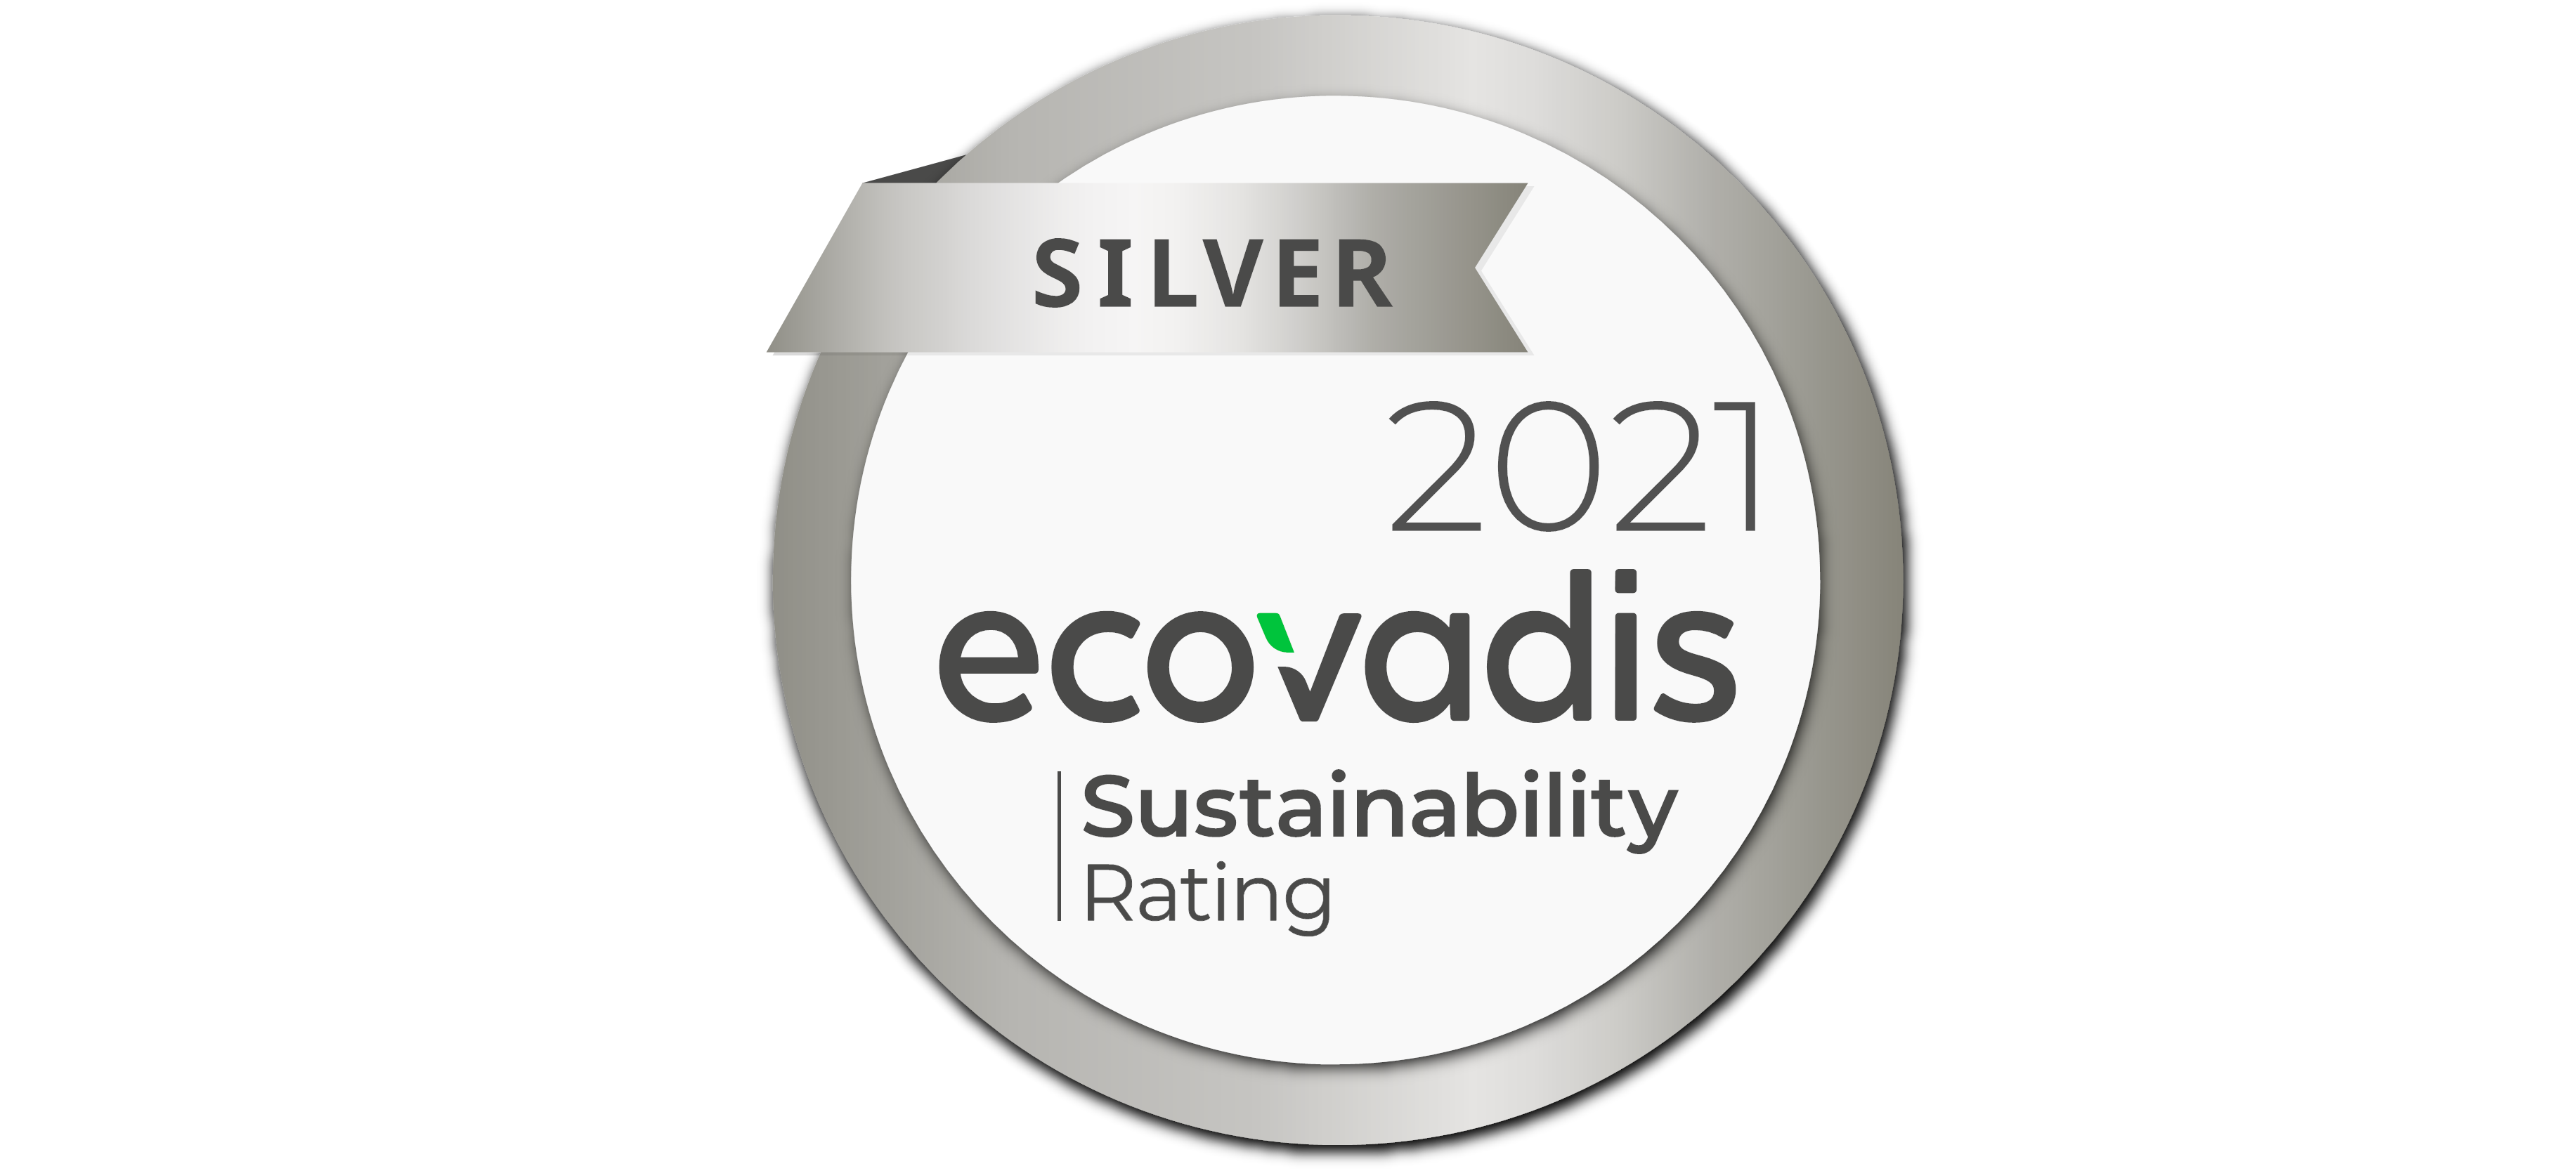 Ecovadis announcement